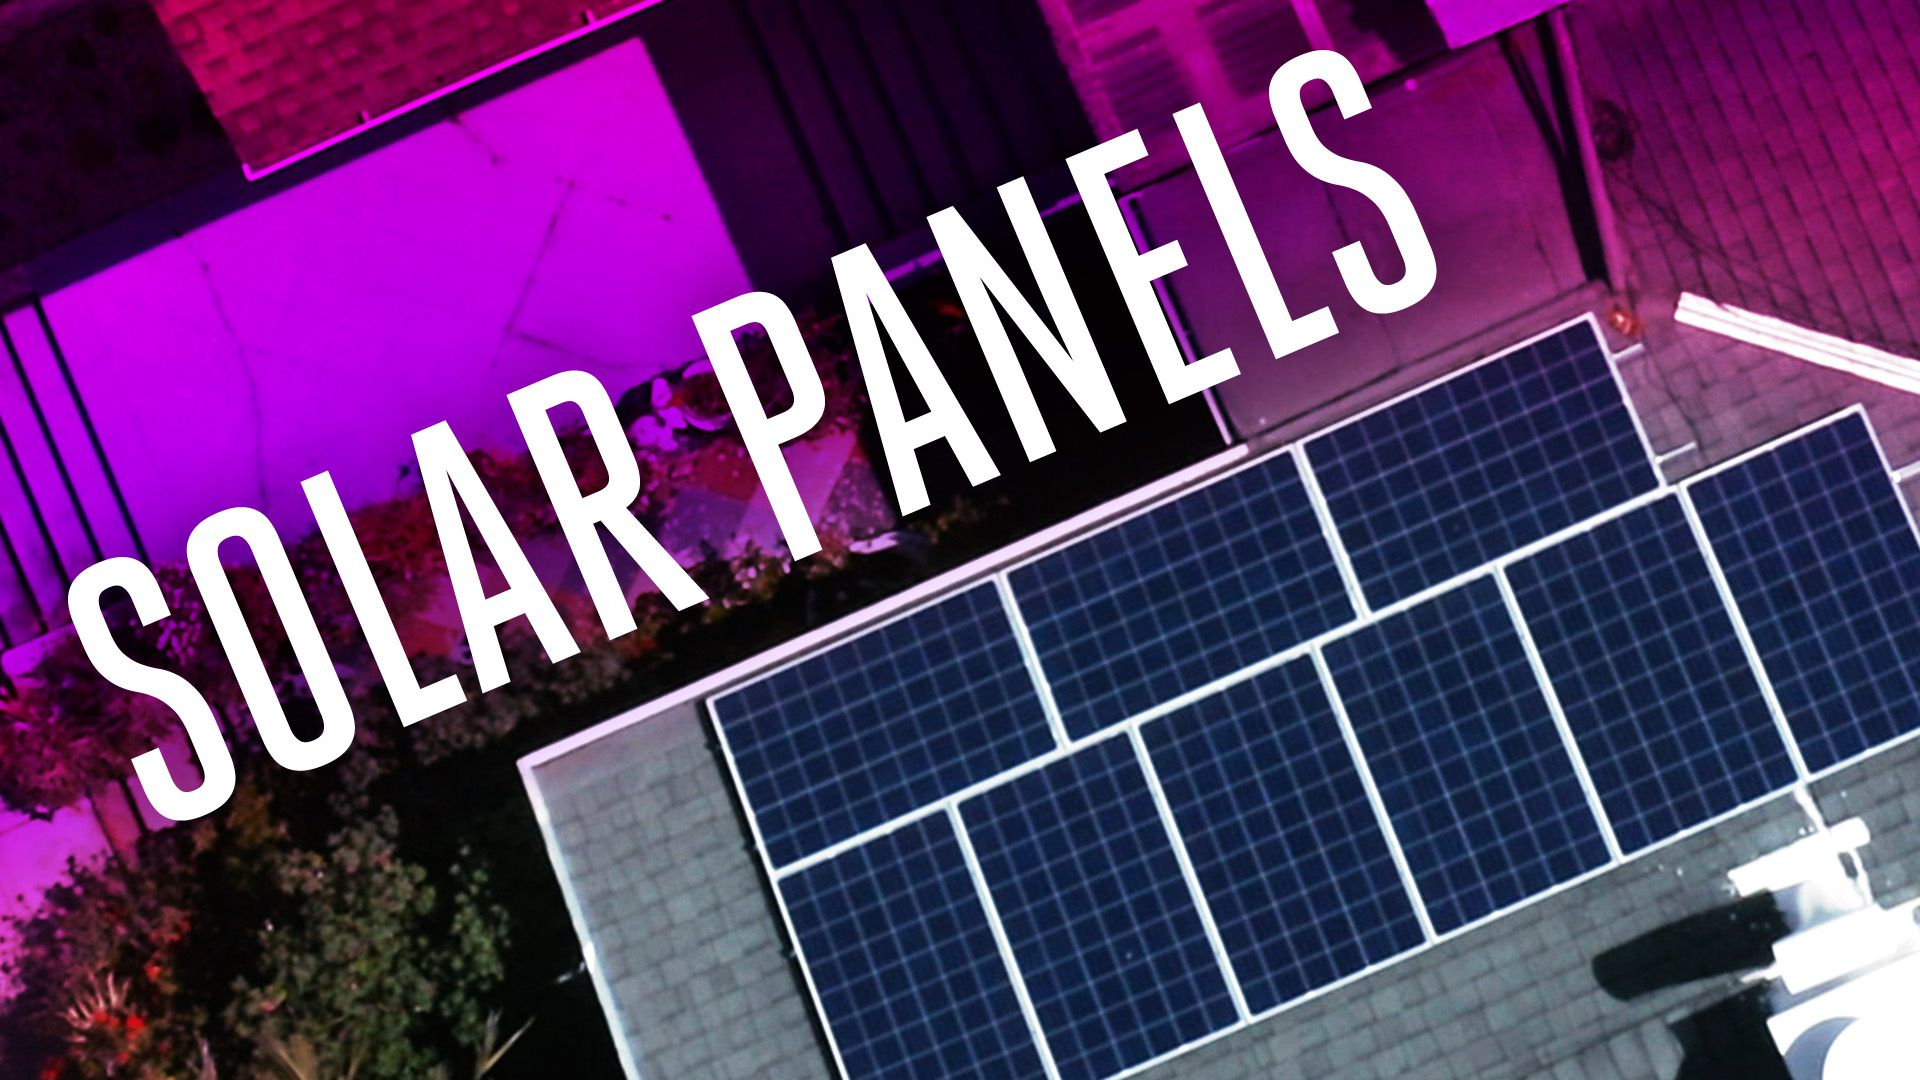 Why buying your own solar panels may finally make sense - The Verge